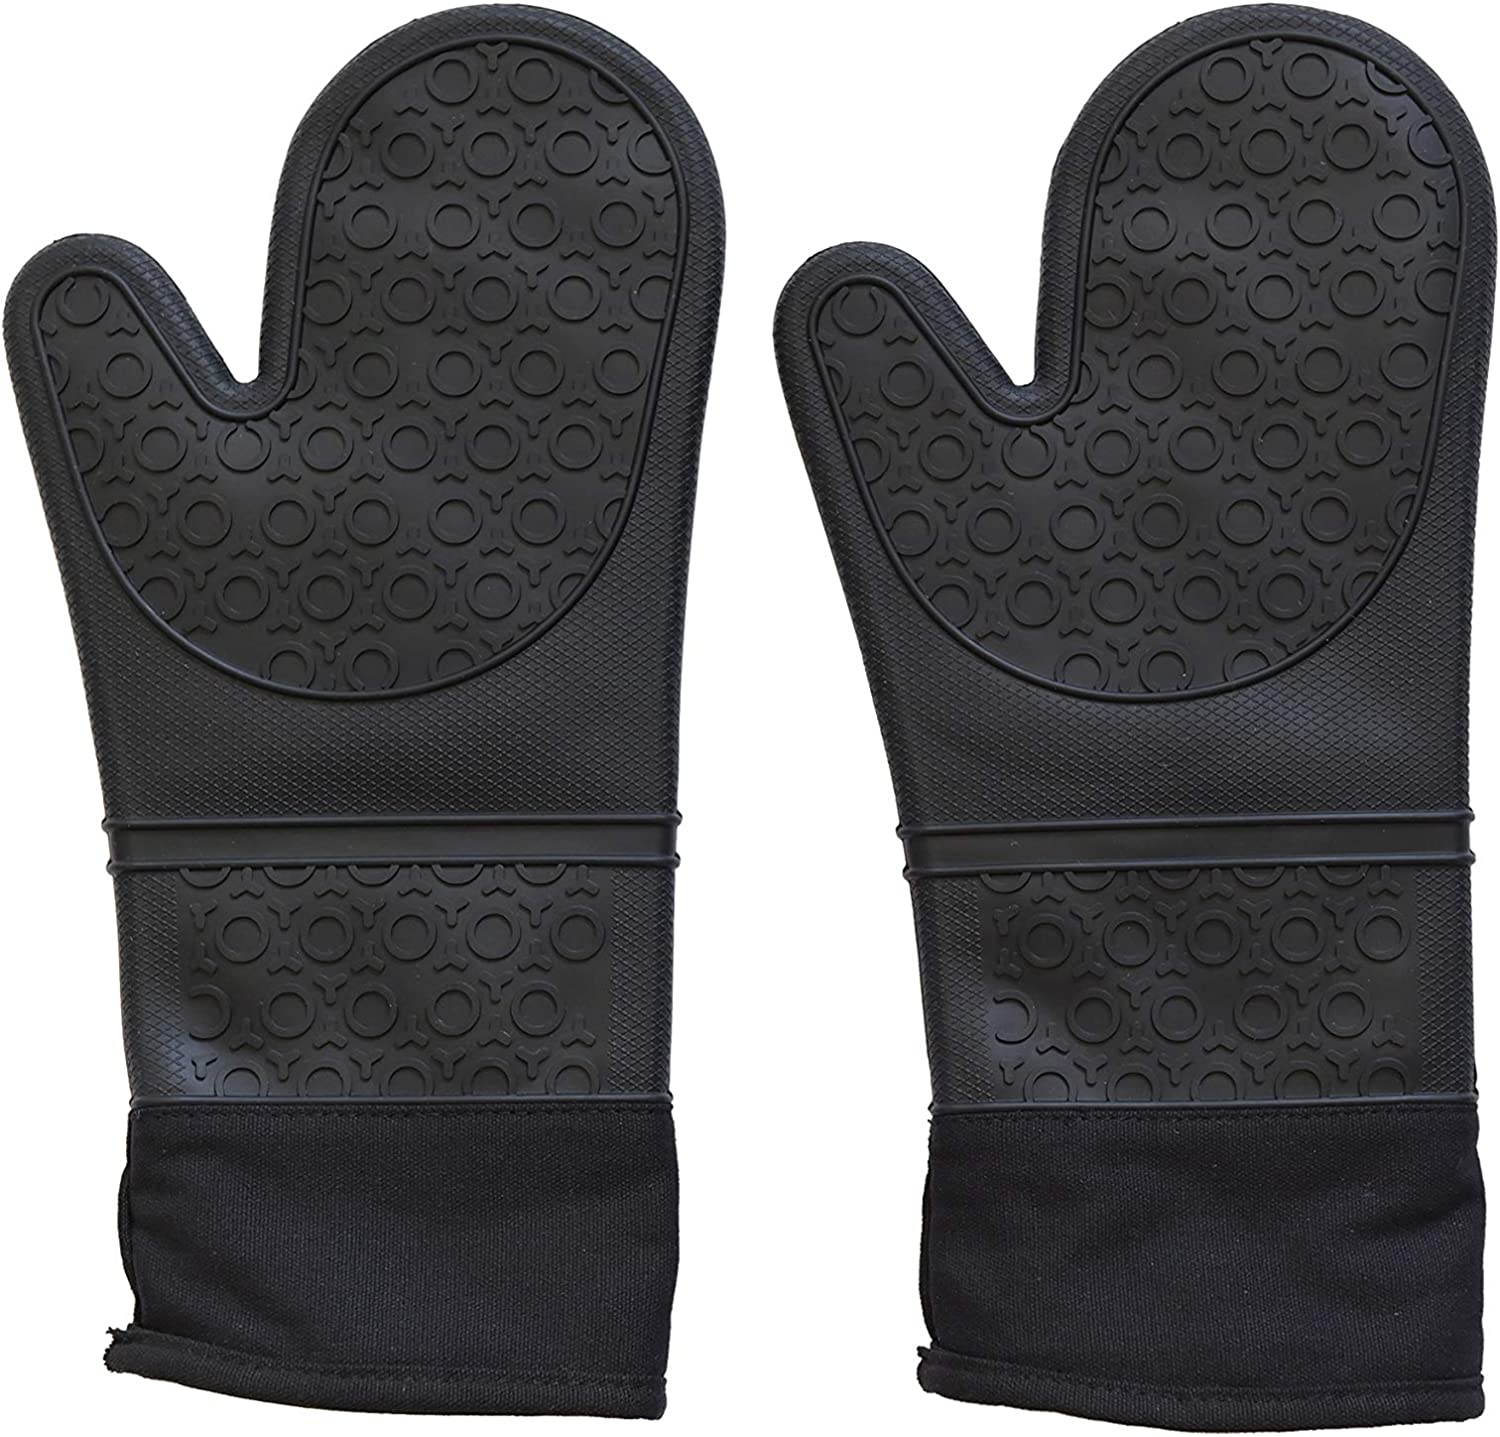 Q's INN Silicone Pot Holders and Oven Mitts with Quilted Liner Heavy Duty Extra Long Heat Resistant -40°F - 460°F Non Slip Textured Grip Food Grade Silicone No Odor No Staining Pair of 2 Black